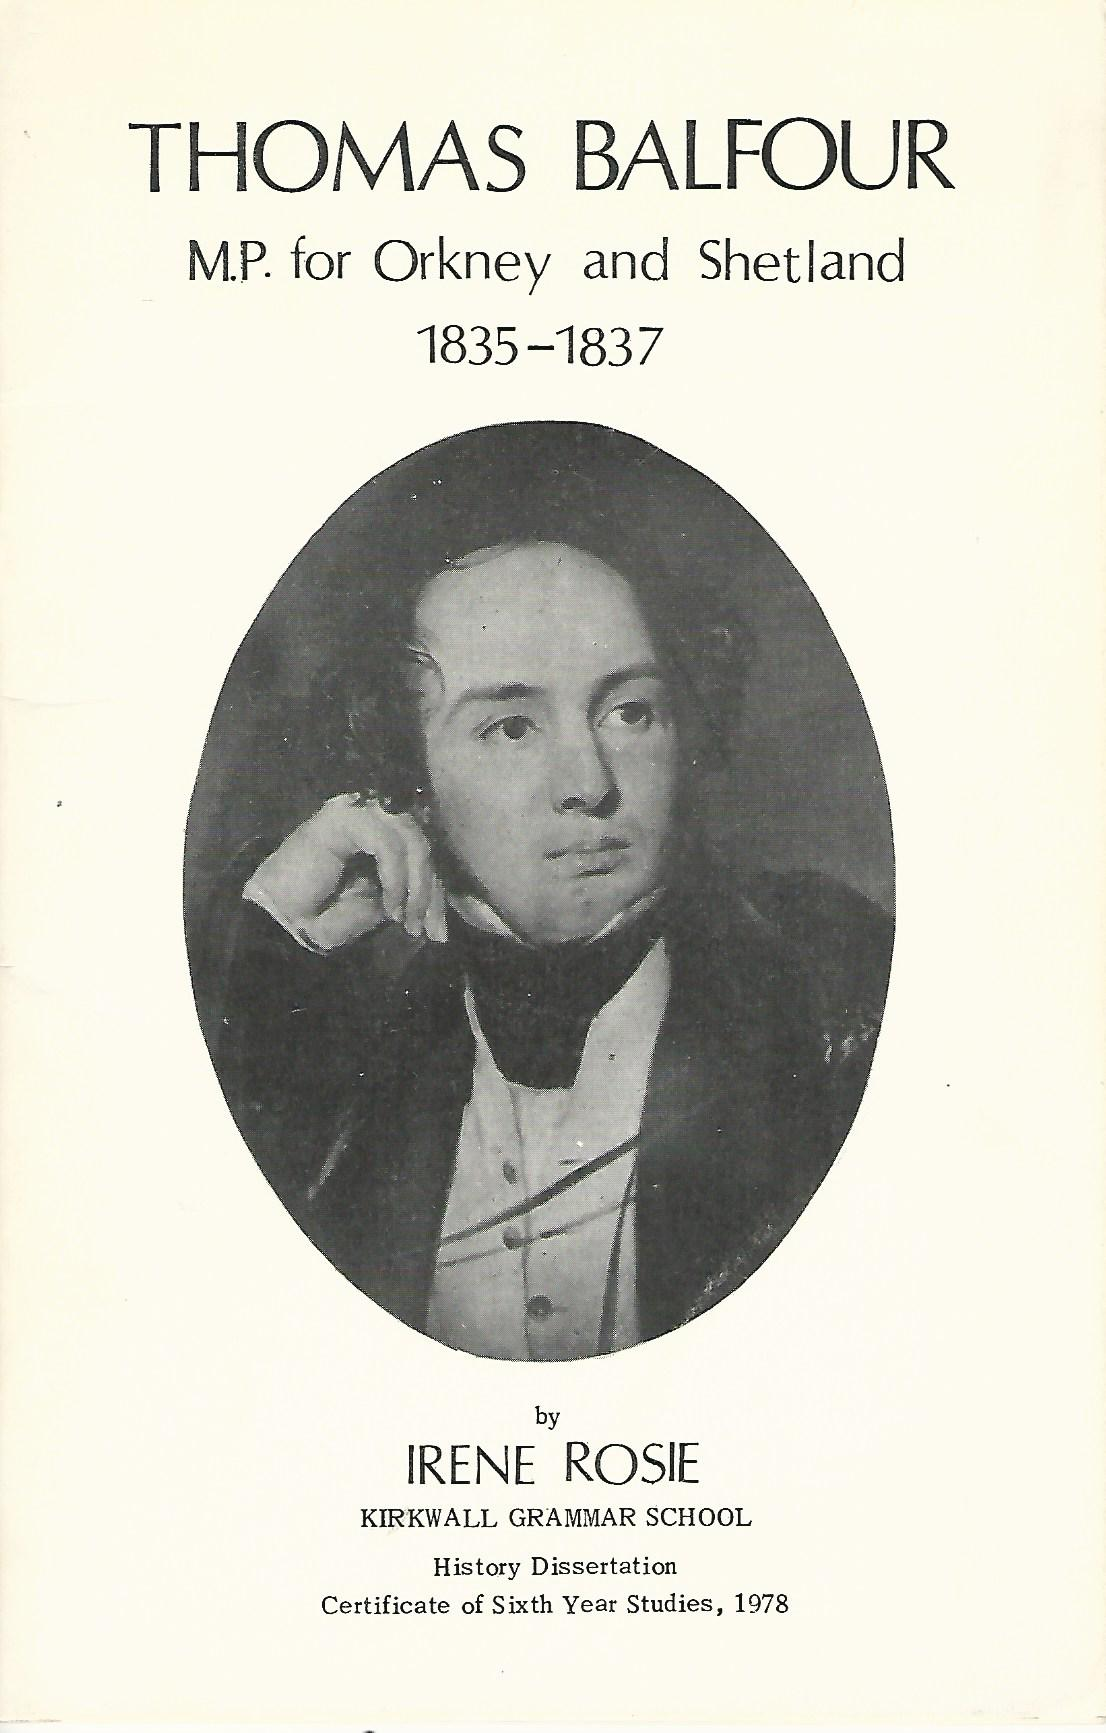 Image for Thomas Balfour: M.P. for Orkney and Shetland 1835 - 1837.